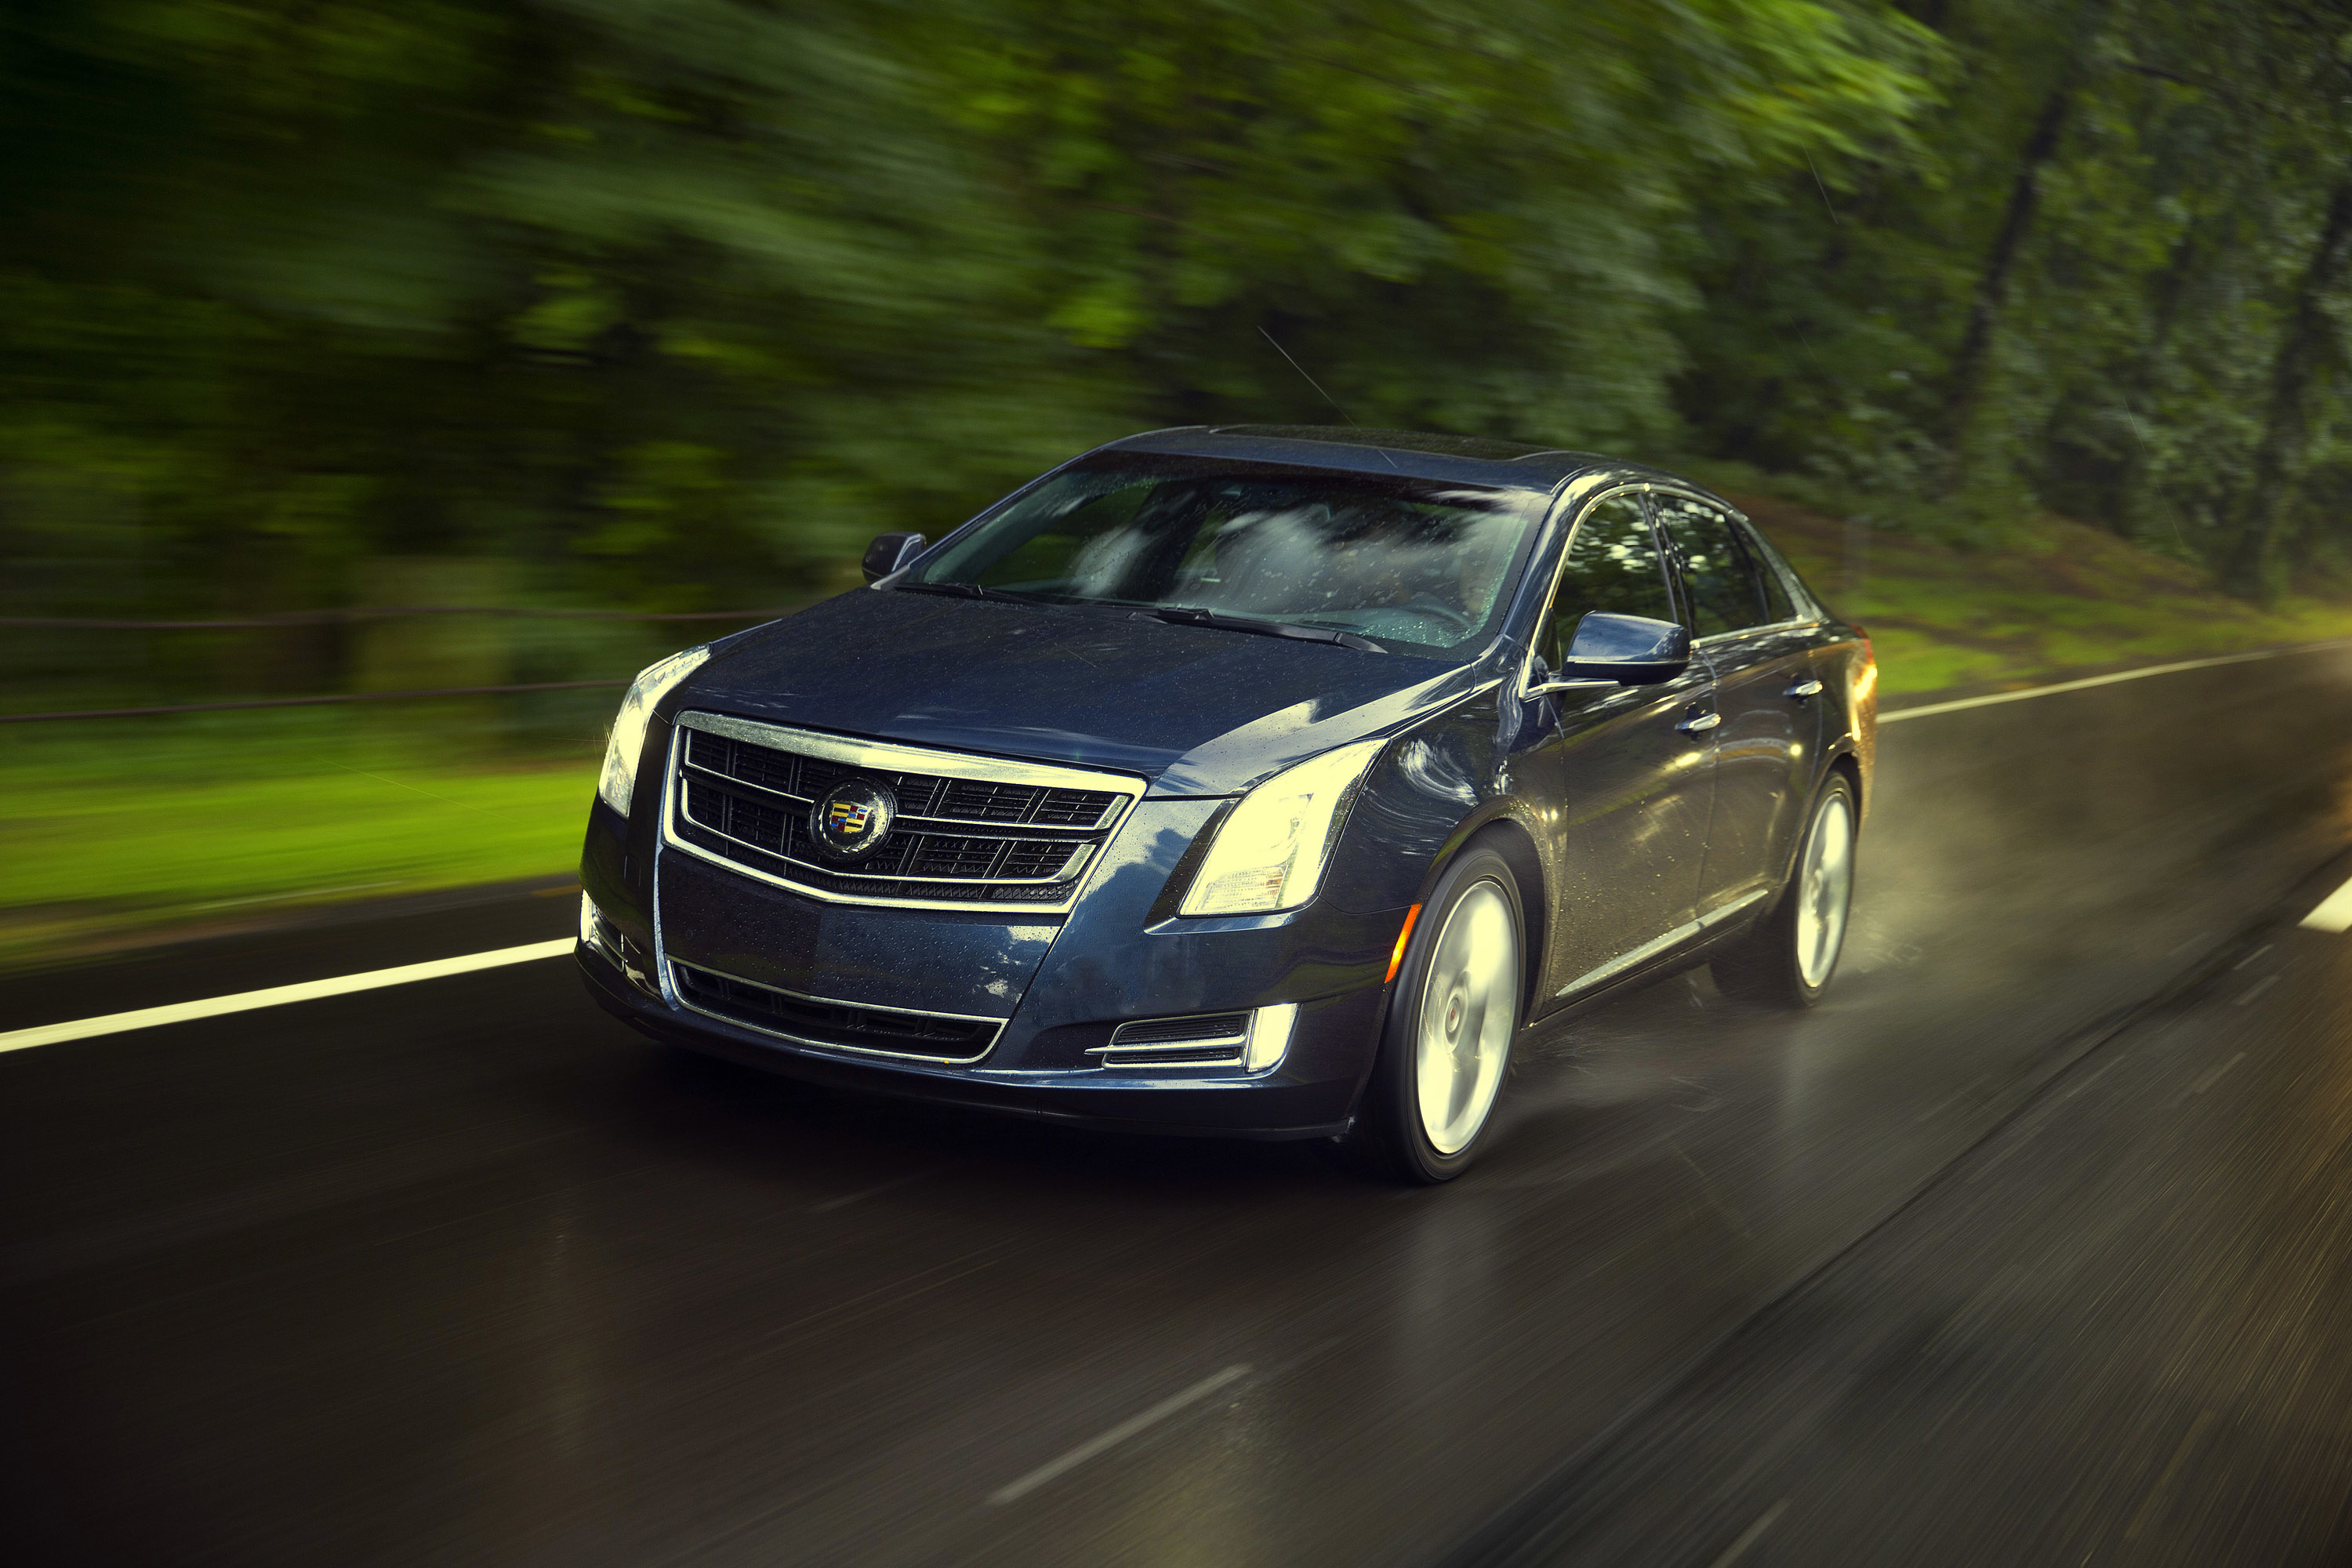 turbo press media packs content kits pages xts cadillac power presskits twin detail me en